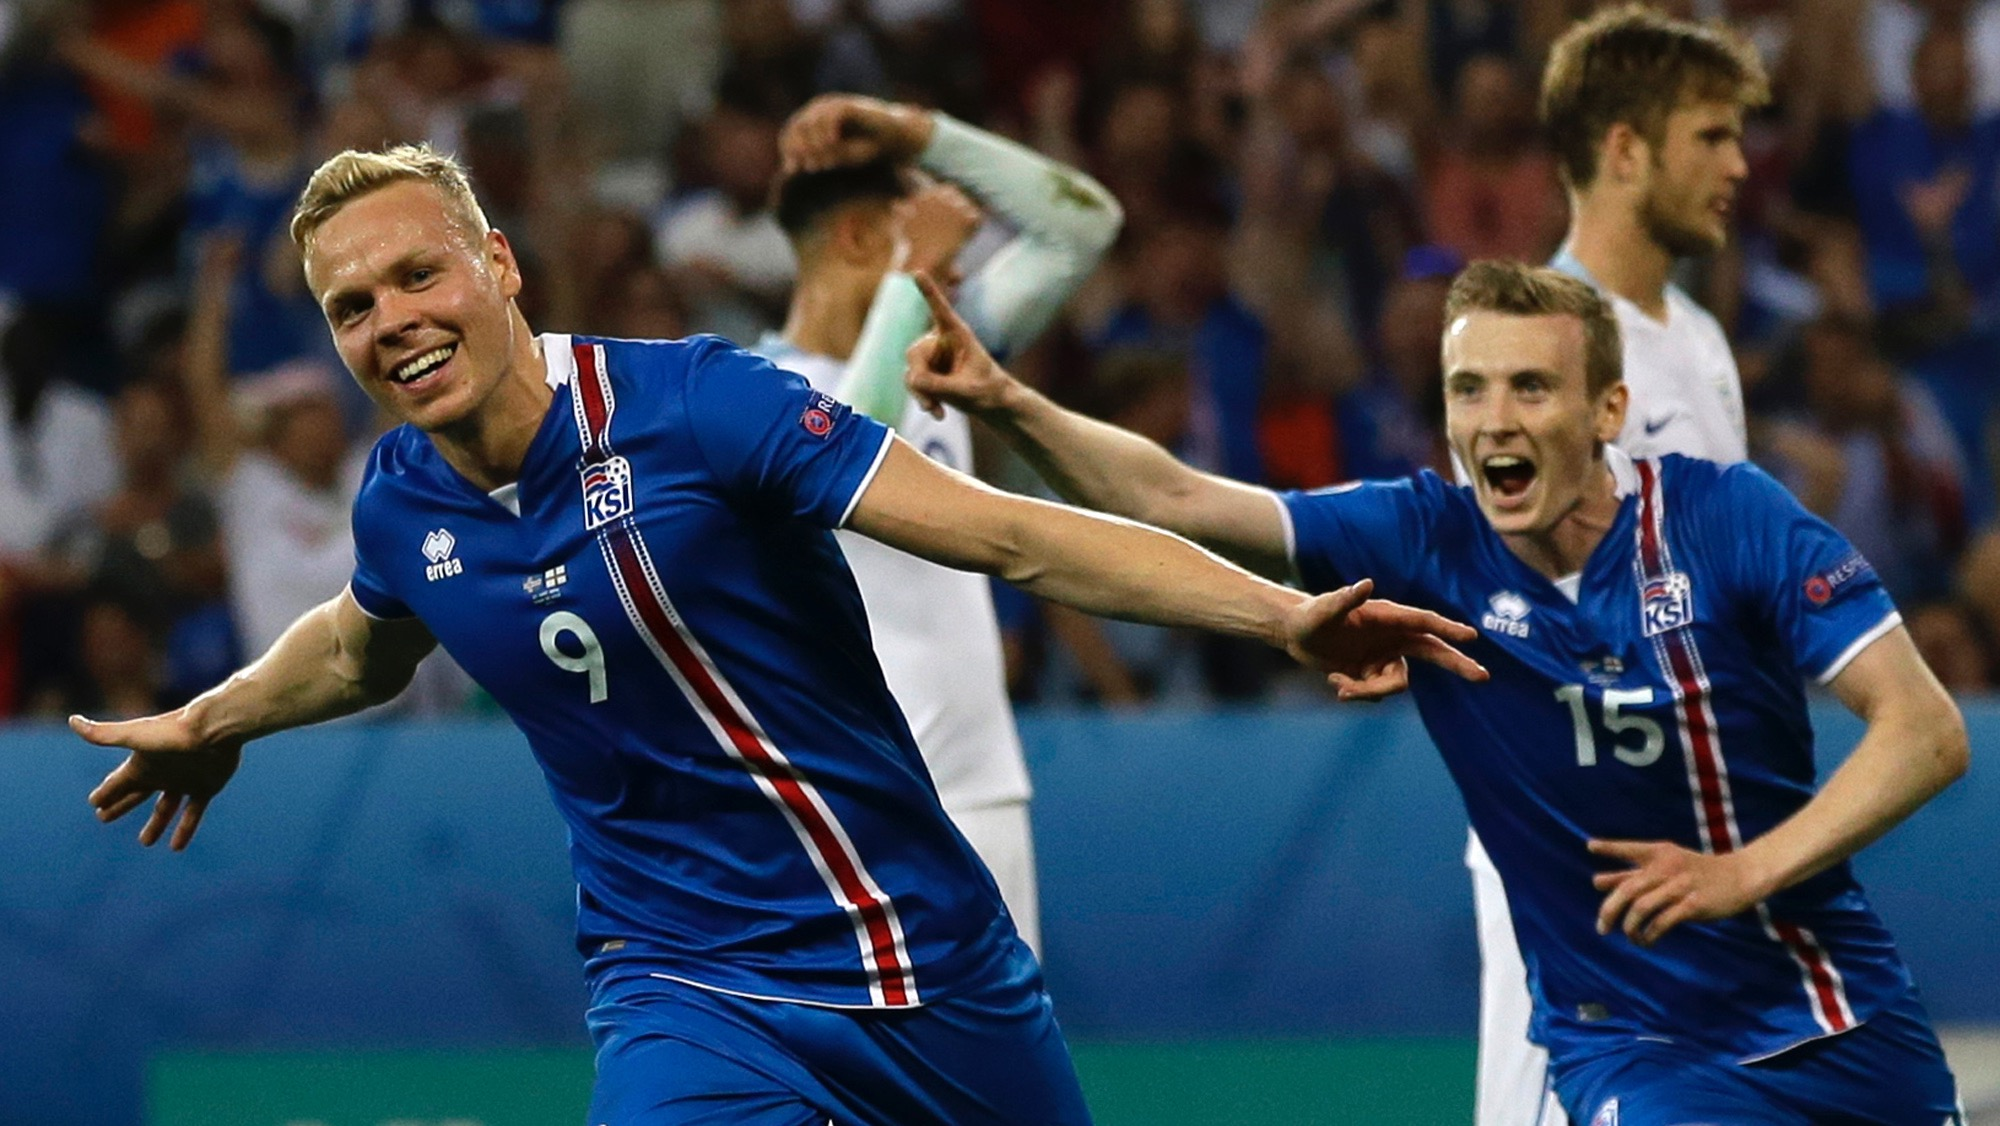 Iceland's Kolbeinn Sigthorsson celebrates after scoring his side's second goal during the Euro 2016 round of 16 soccer match between England and Iceland, at the Allianz Riviera stadium in Nice, France, Monday, June 27, 2016. (AP Photo/Claude Paris)